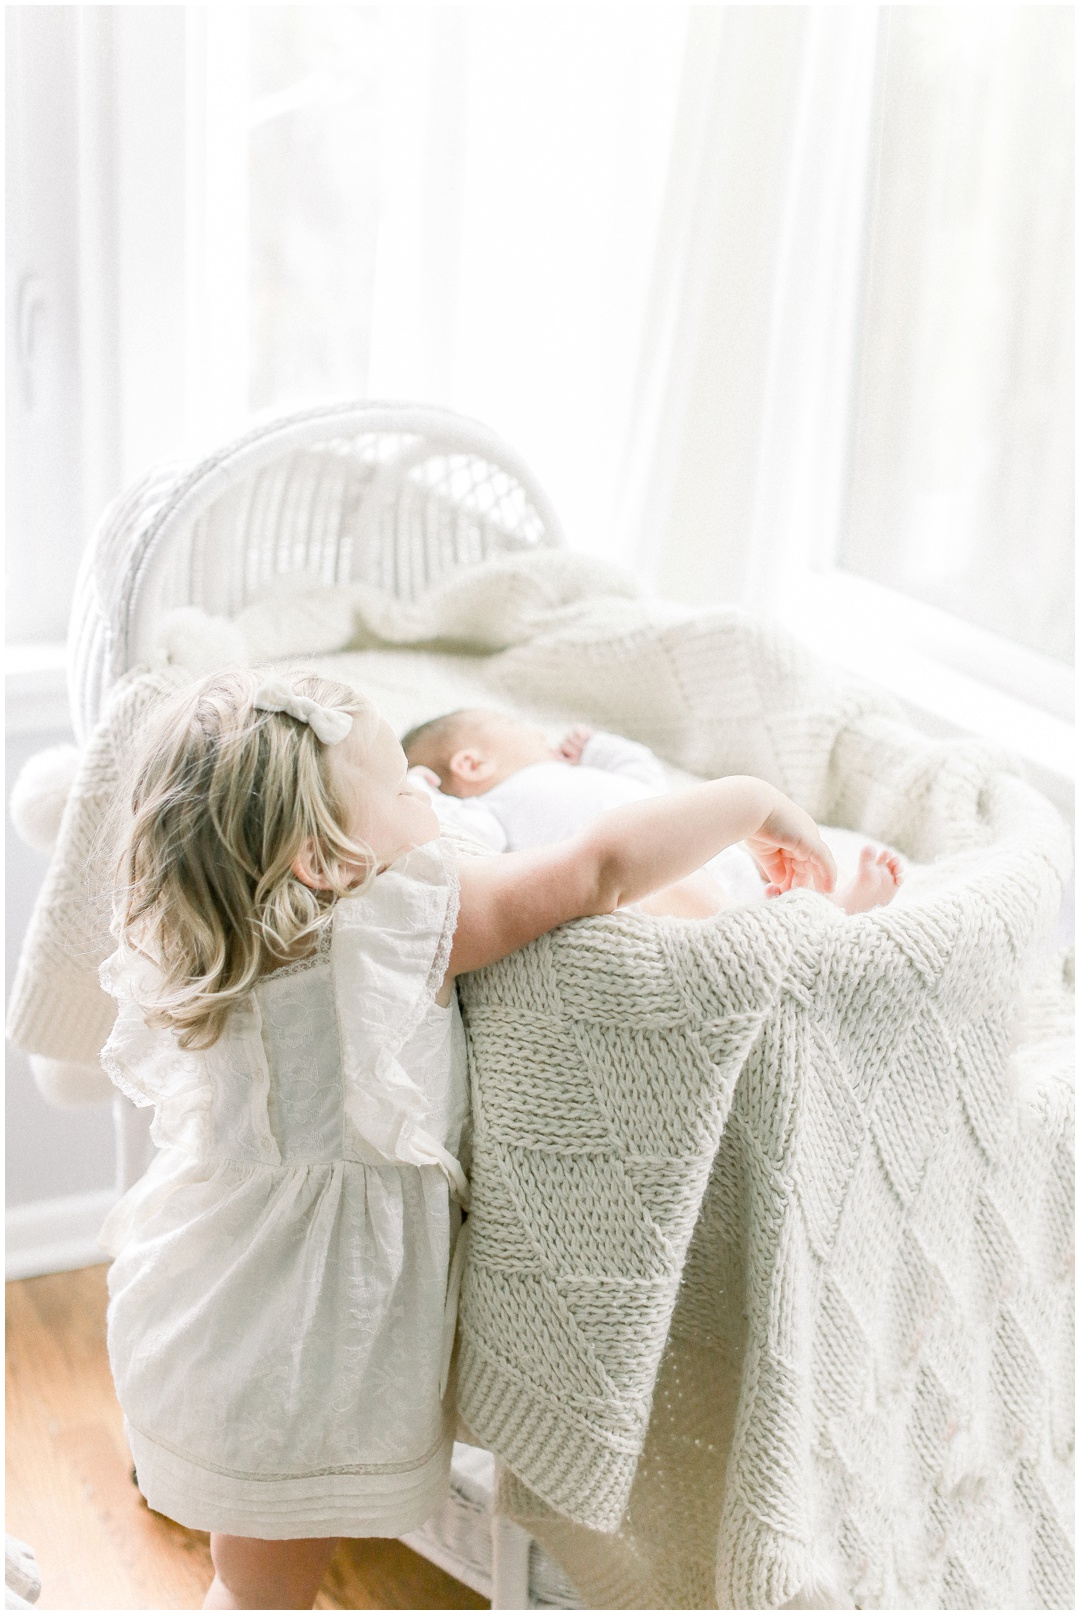 Newport_Beach_Newborn_Light_Airy_Natural_Photographer_Newport_Beach_Photographer_Orange_County_Family_Photographer_Cori_Kleckner_Photography_Newport_Beach_Photographer_Blaire_Baker_Brett_Baker_Caroline_Baker__3890.jpg